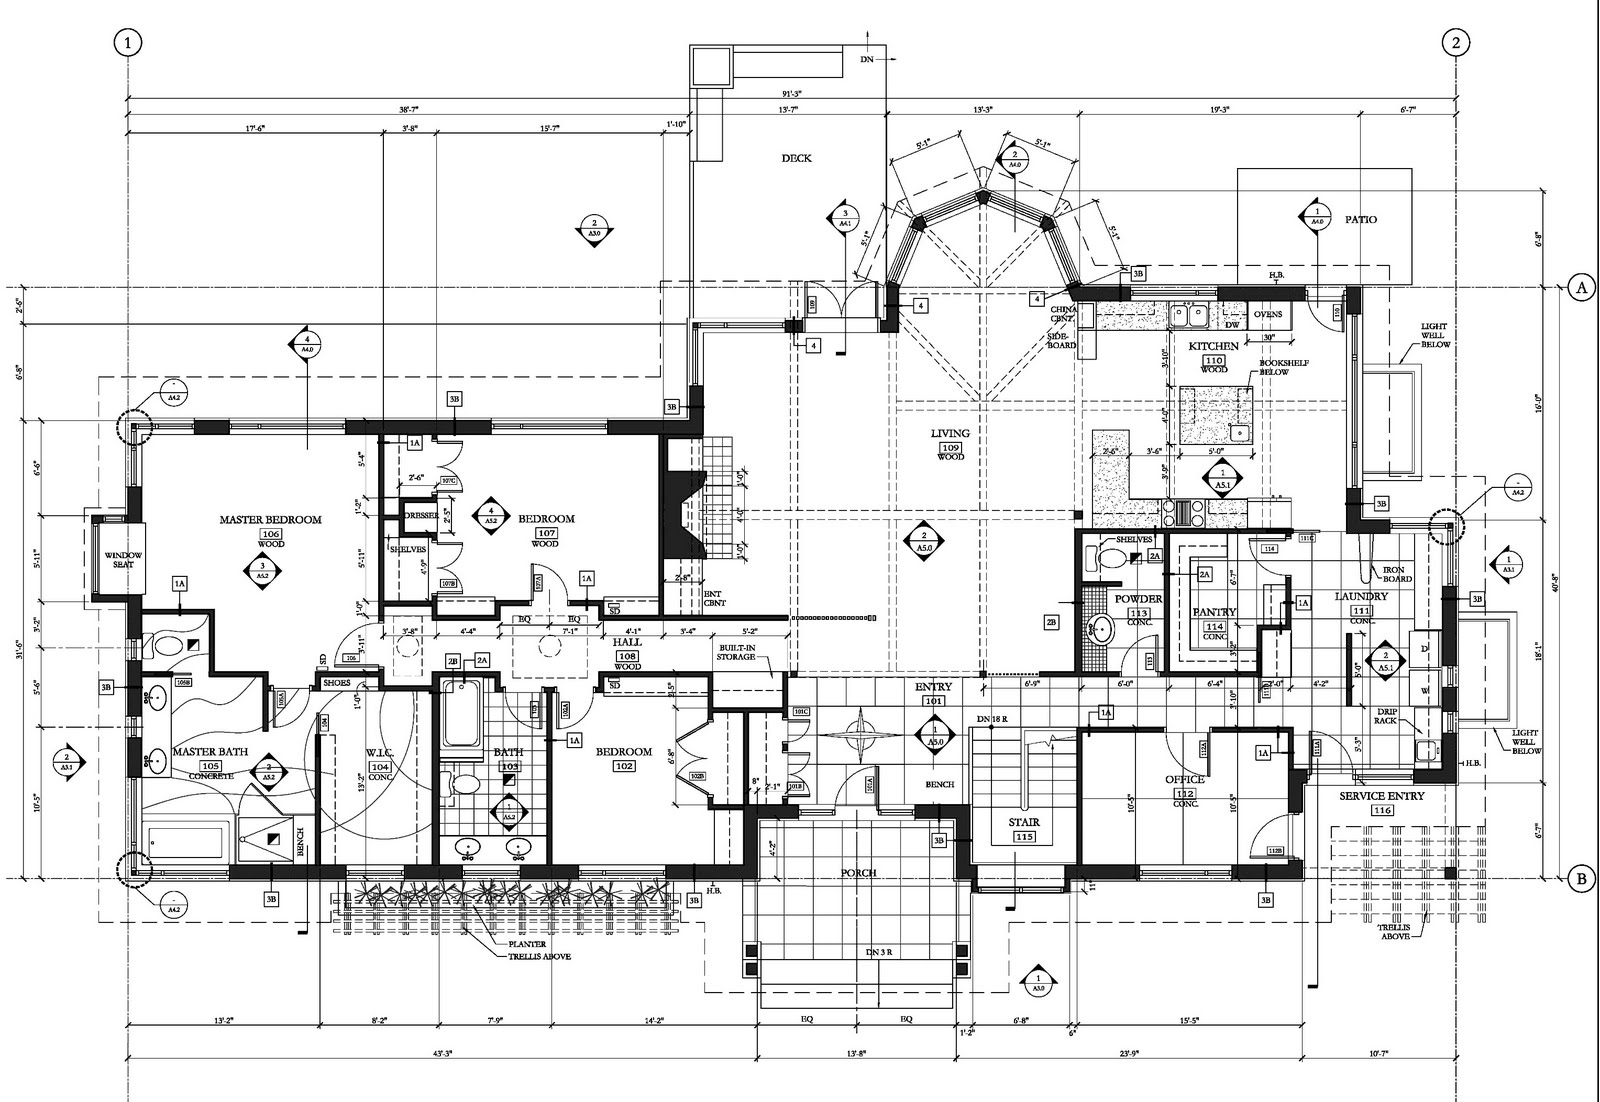 Architectural Diagrams Insulated Concrete Form 39 Icf